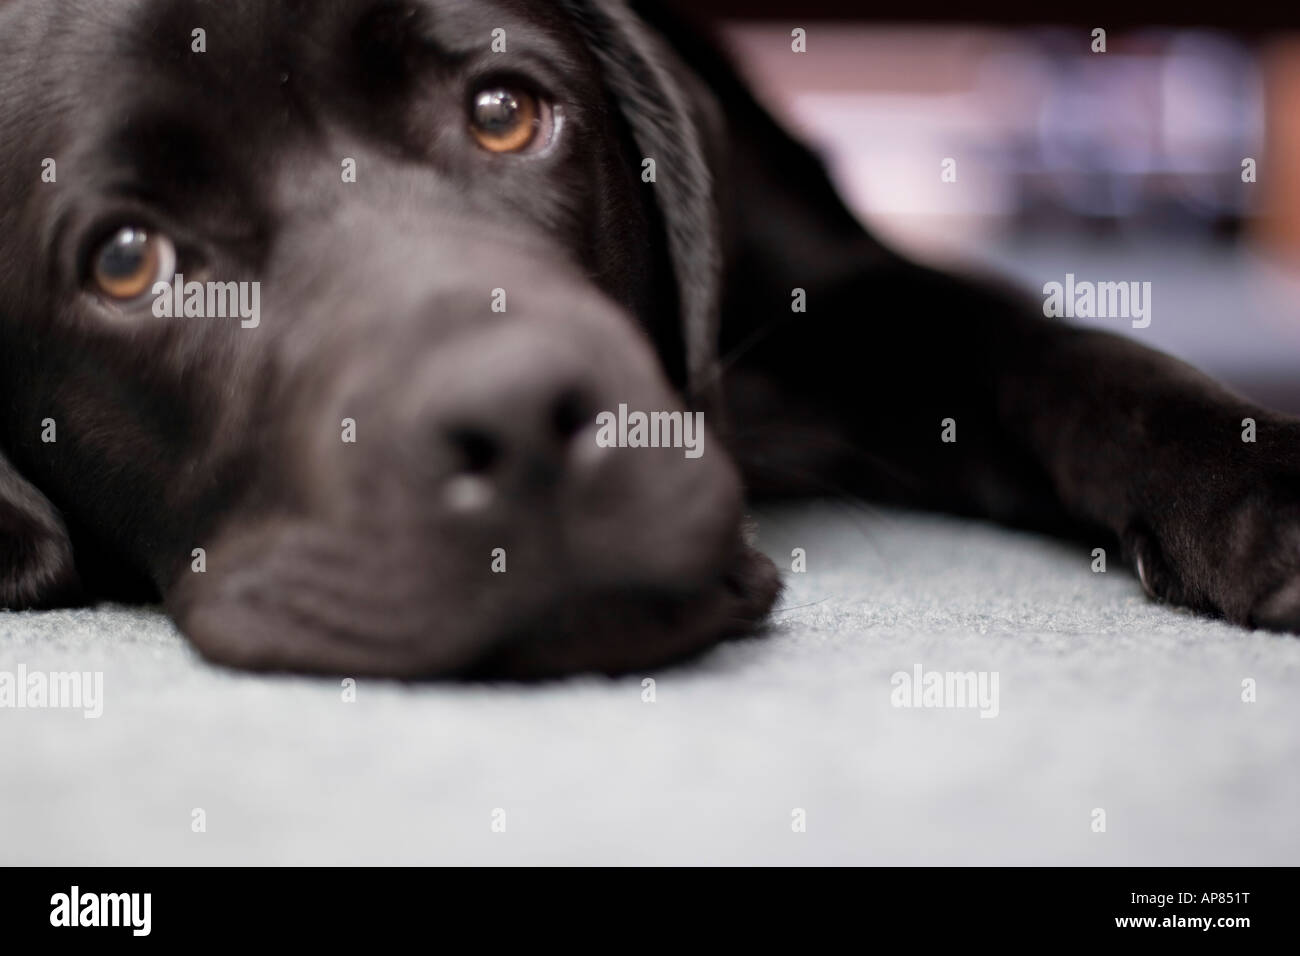 Buster looks sadly at the camera - Stock Image